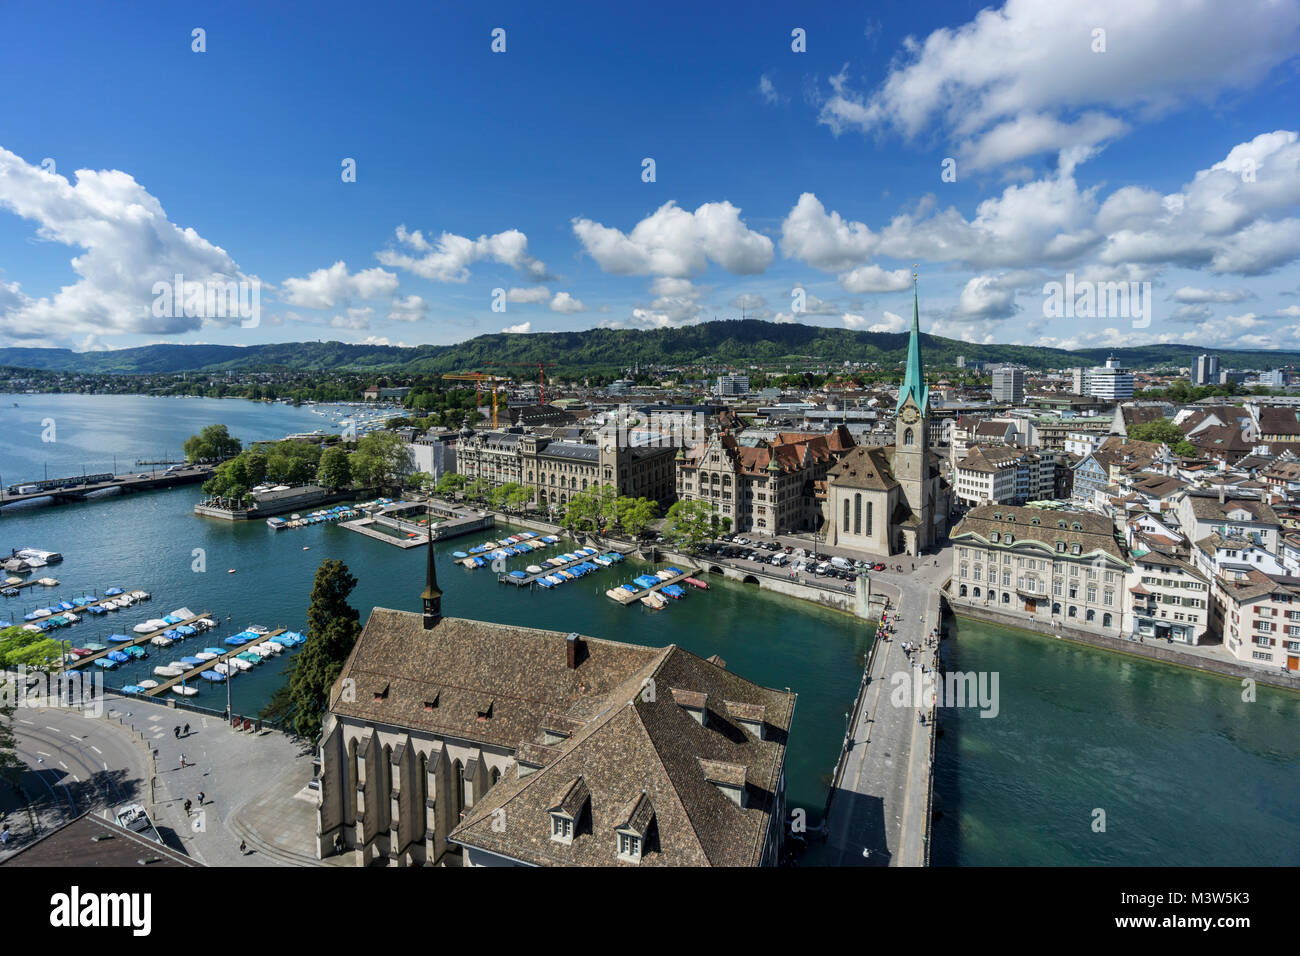 Panoramic view from Grossmunster cathedral, river Limmat, Zurich lake, Fraumunster, Zurich, Switzerland - Stock Image